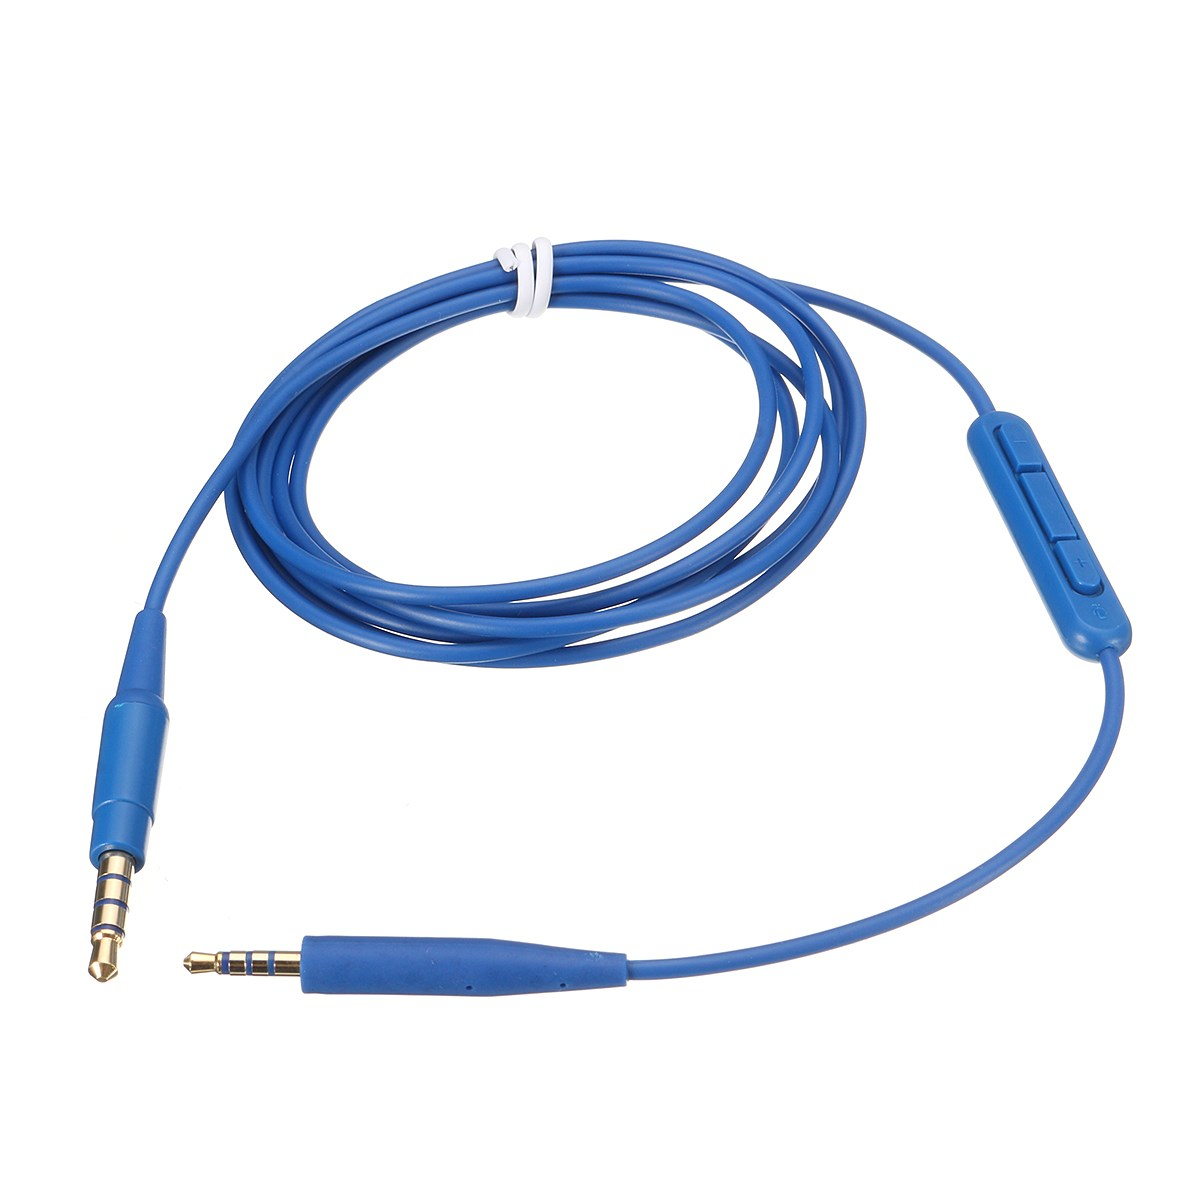 hight resolution of  new replacement cable for bose headphones remote audio cable with mic for soundtrue for soundlink on